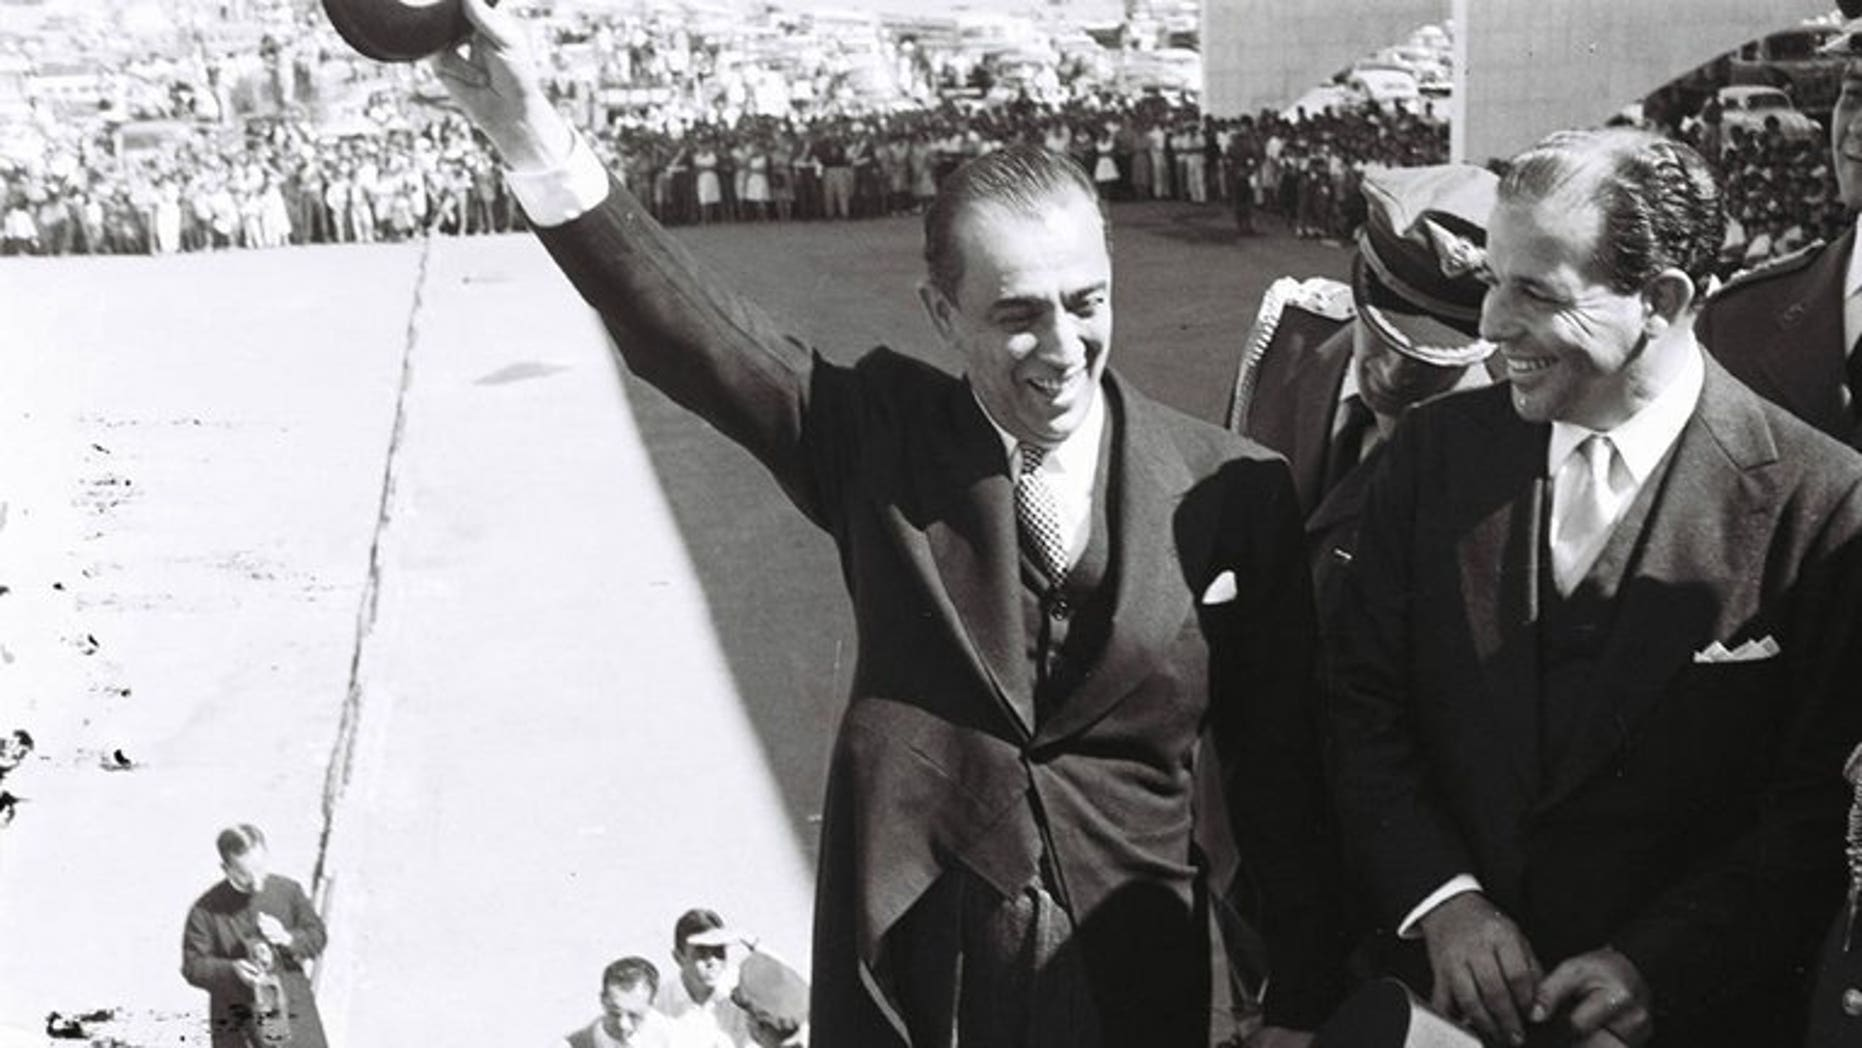 Photo released by the Public Archive of Brasilia's Federal Distric of Brazilian former president (1956-1961) Juscelino Kubitschek (C) next to his vice president Joao Goulart on April 21, 1960. The remains of Goulart, who later became president, will be exhumed to determine whether he was poisoned in the 1970s by rightwing rulers clamping on dissent.